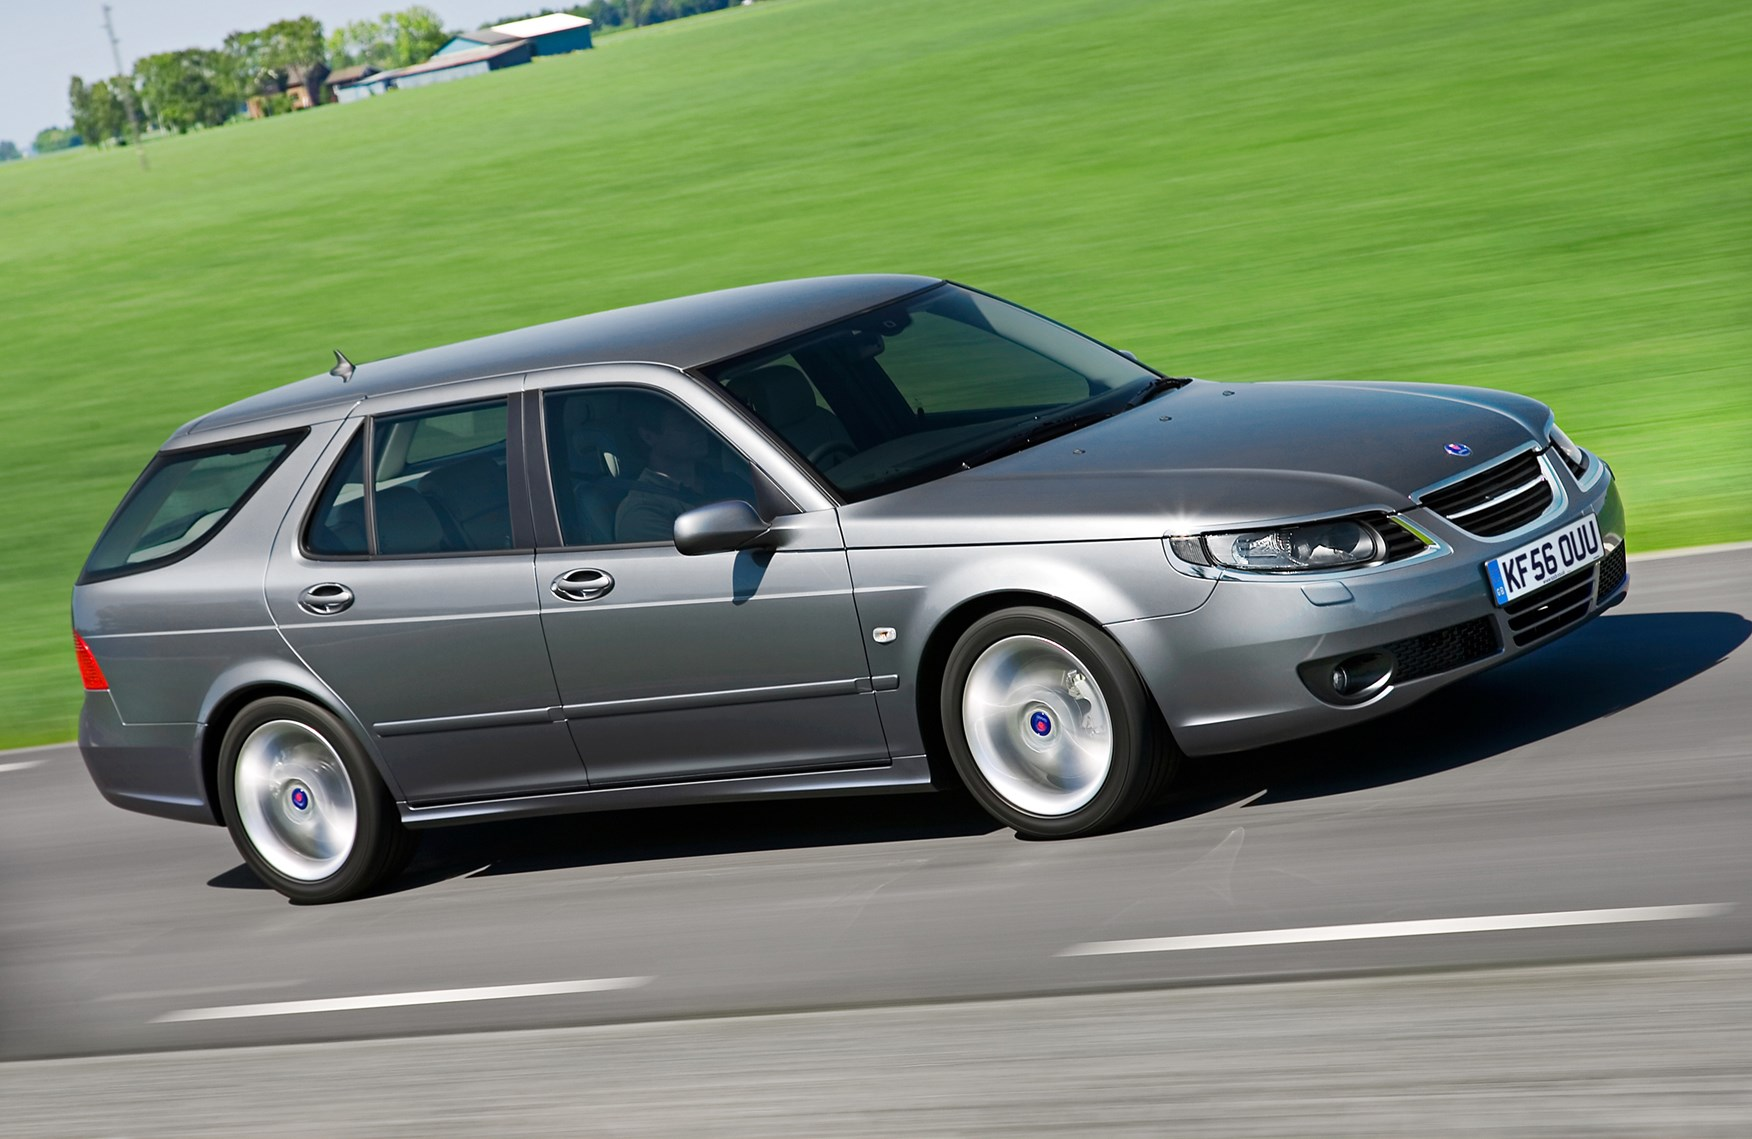 saab 9 5 estate review 2005 2010 parkers. Black Bedroom Furniture Sets. Home Design Ideas